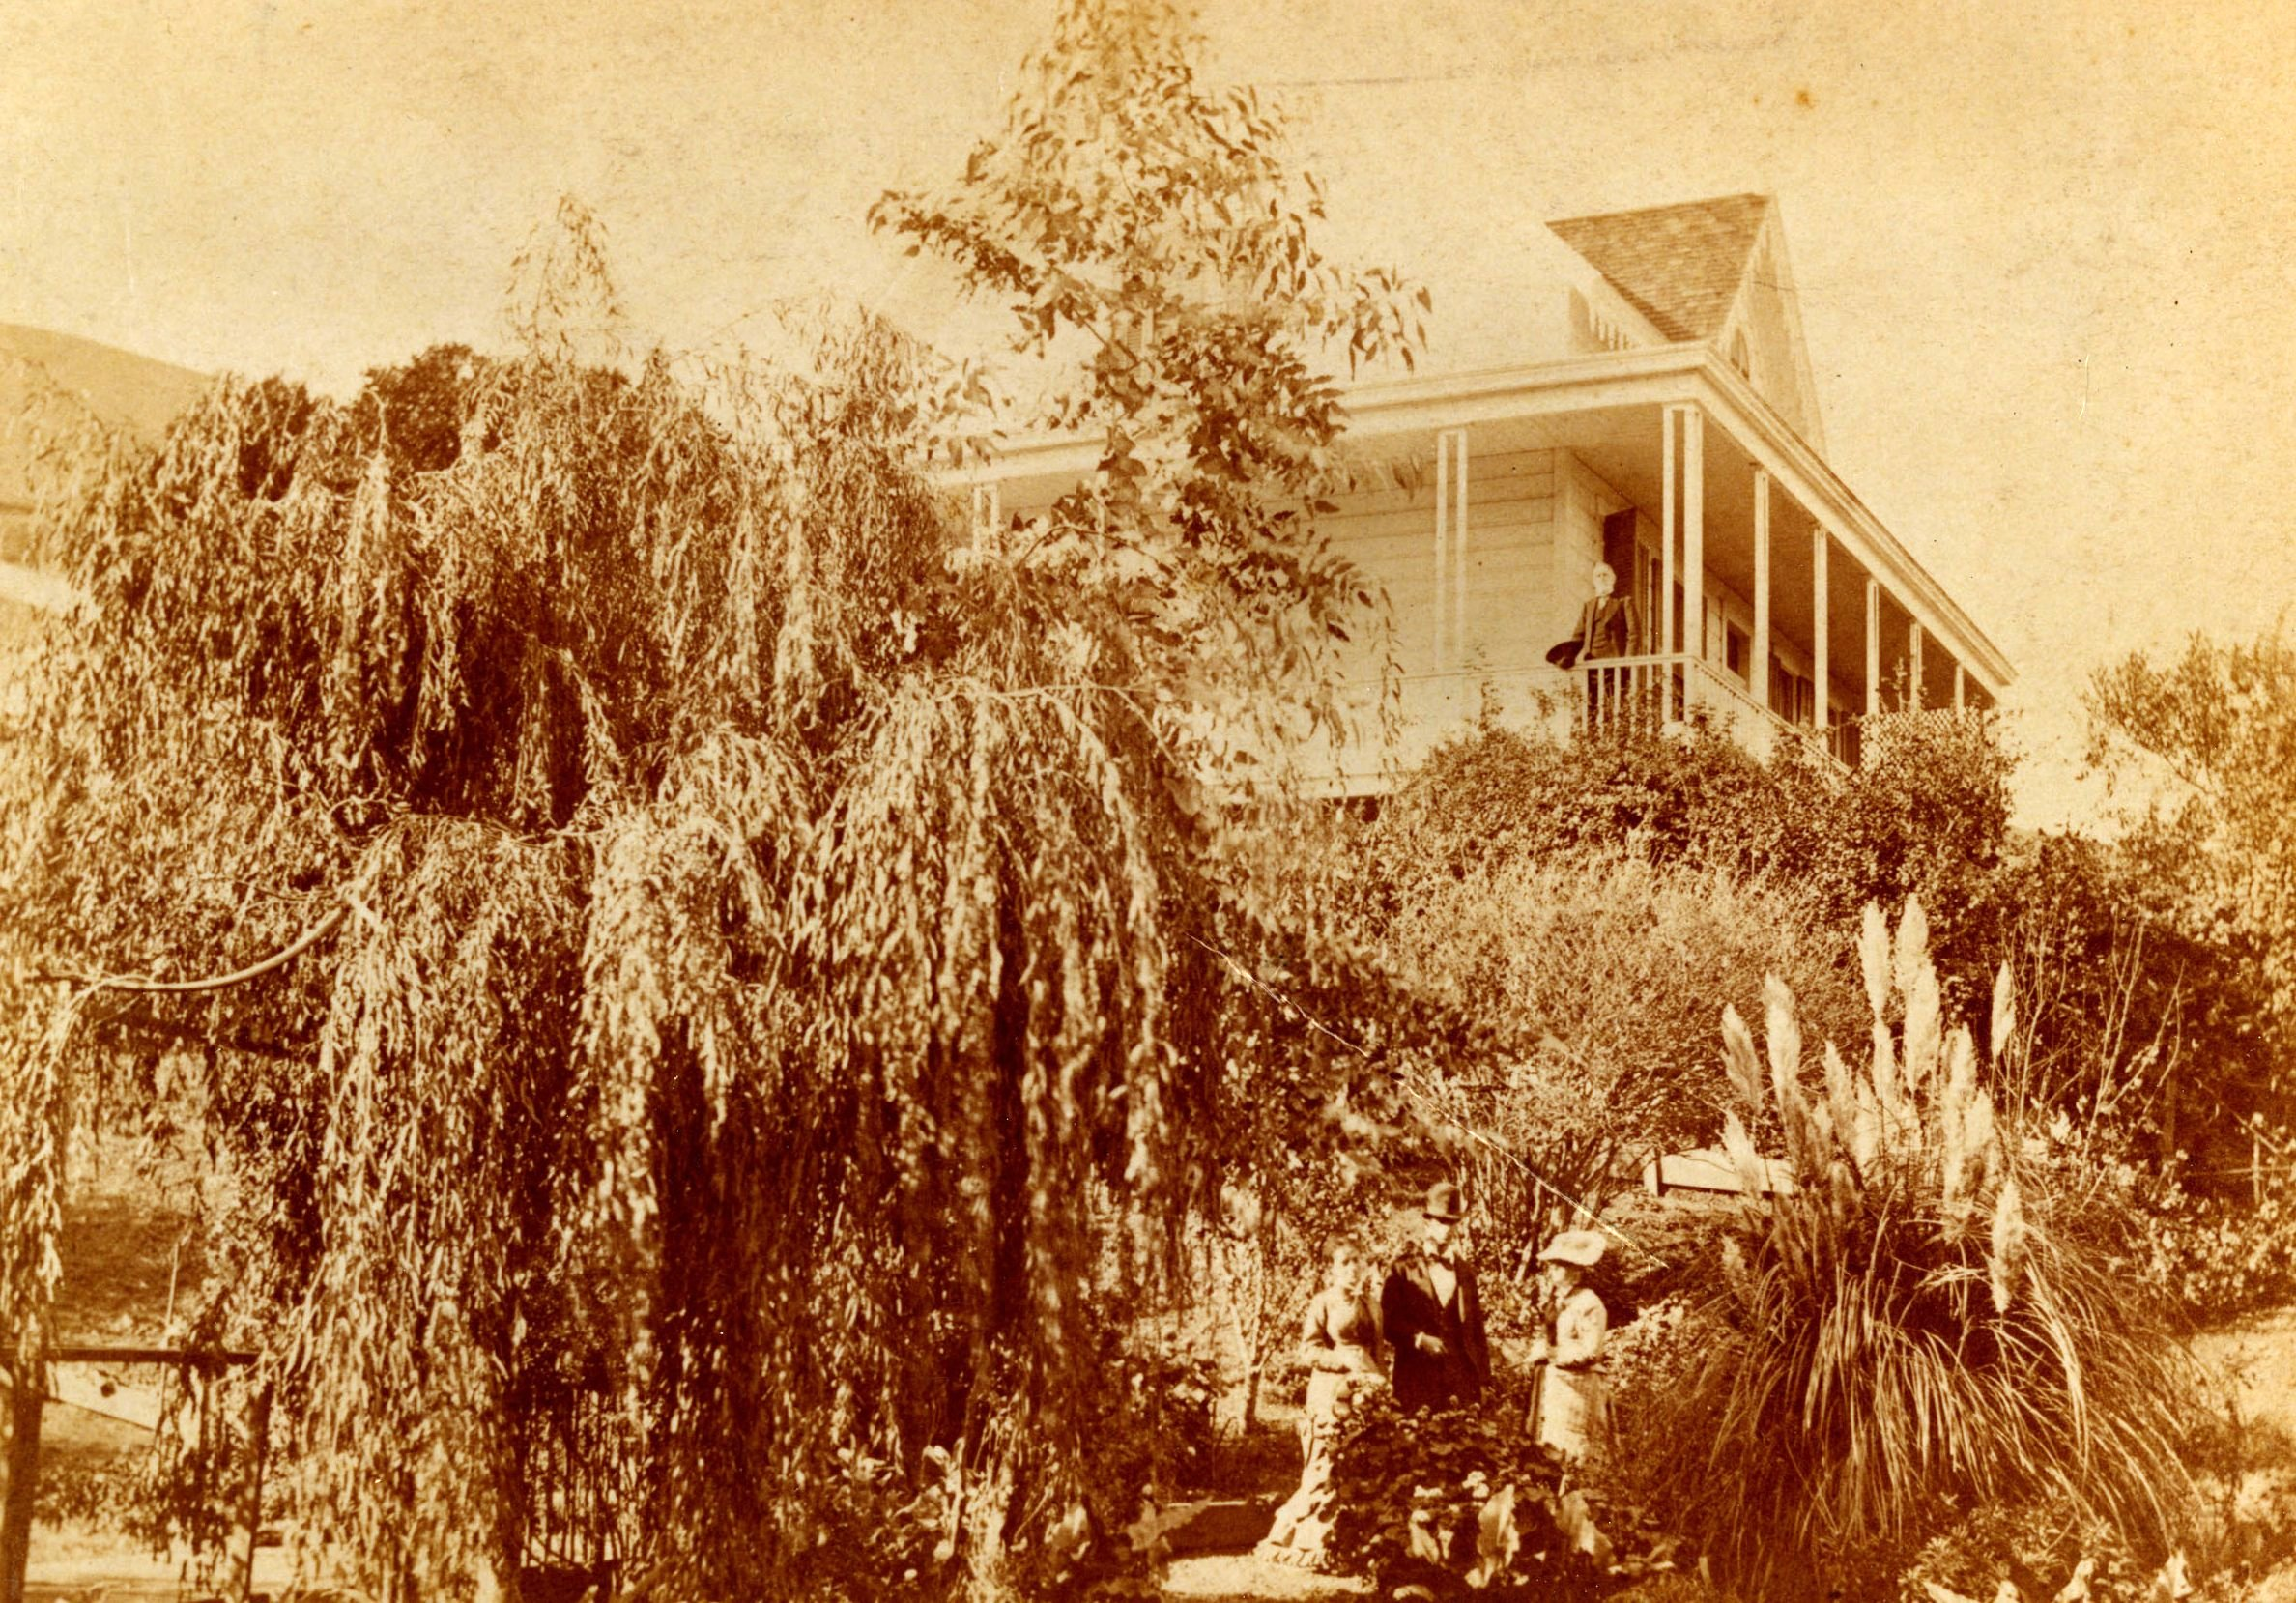 The Gardner House, now Sausalito's oldest home, as it looked in the 1800s. Photo courtesy of Sausalito Historical Society